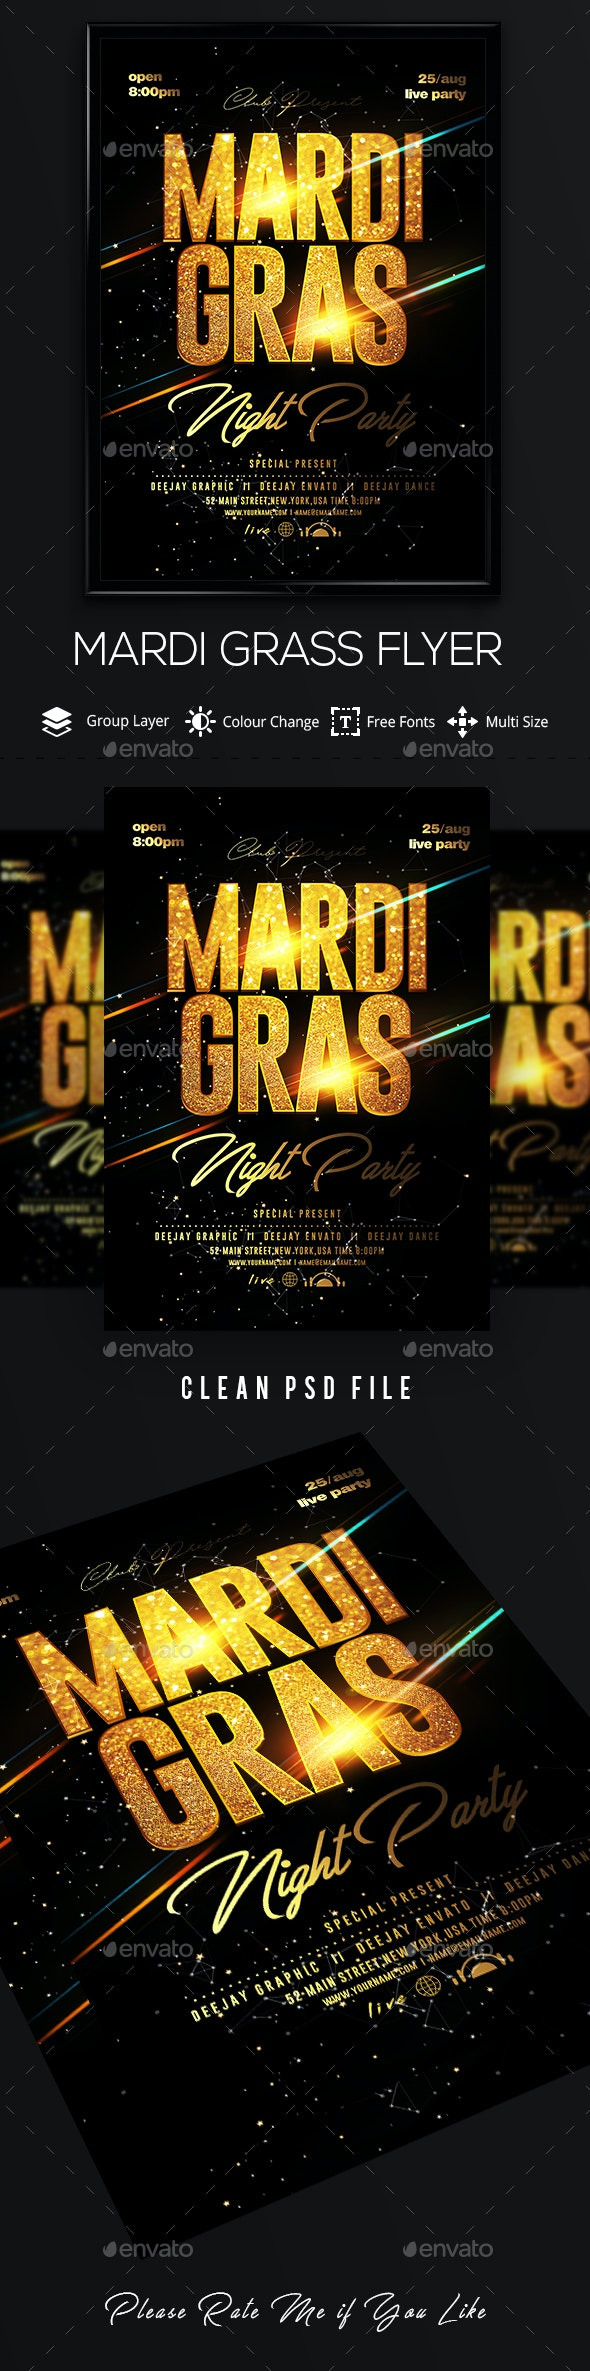 Mardi Grass Flyer Template - Clubs & Parties Events